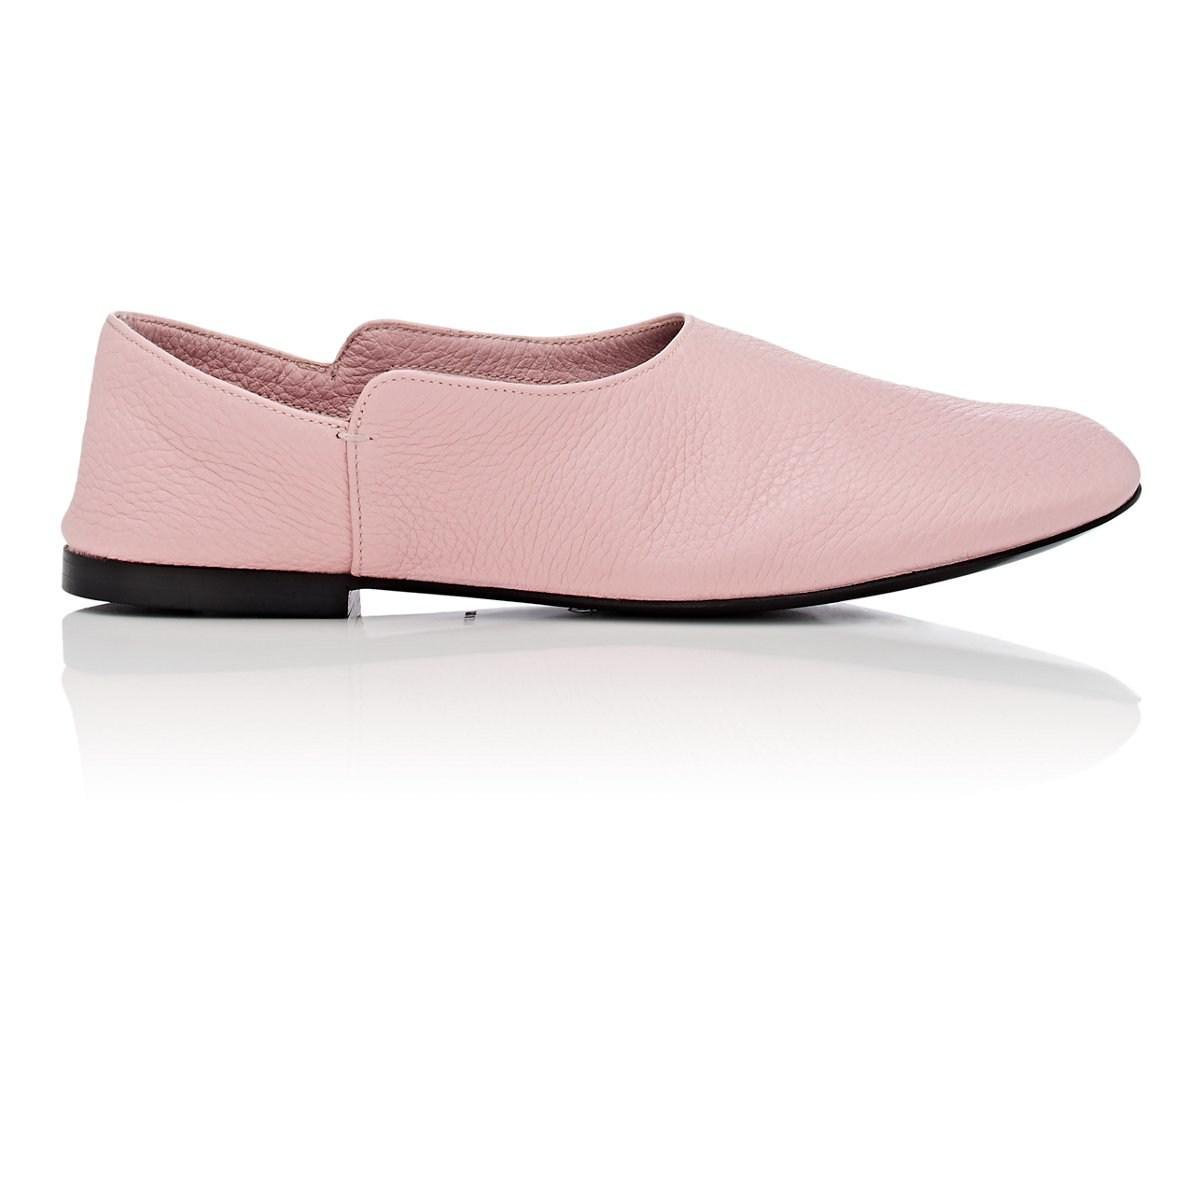 7659dd8368e Lyst - The Row Boheme Leather Loafers in Pink